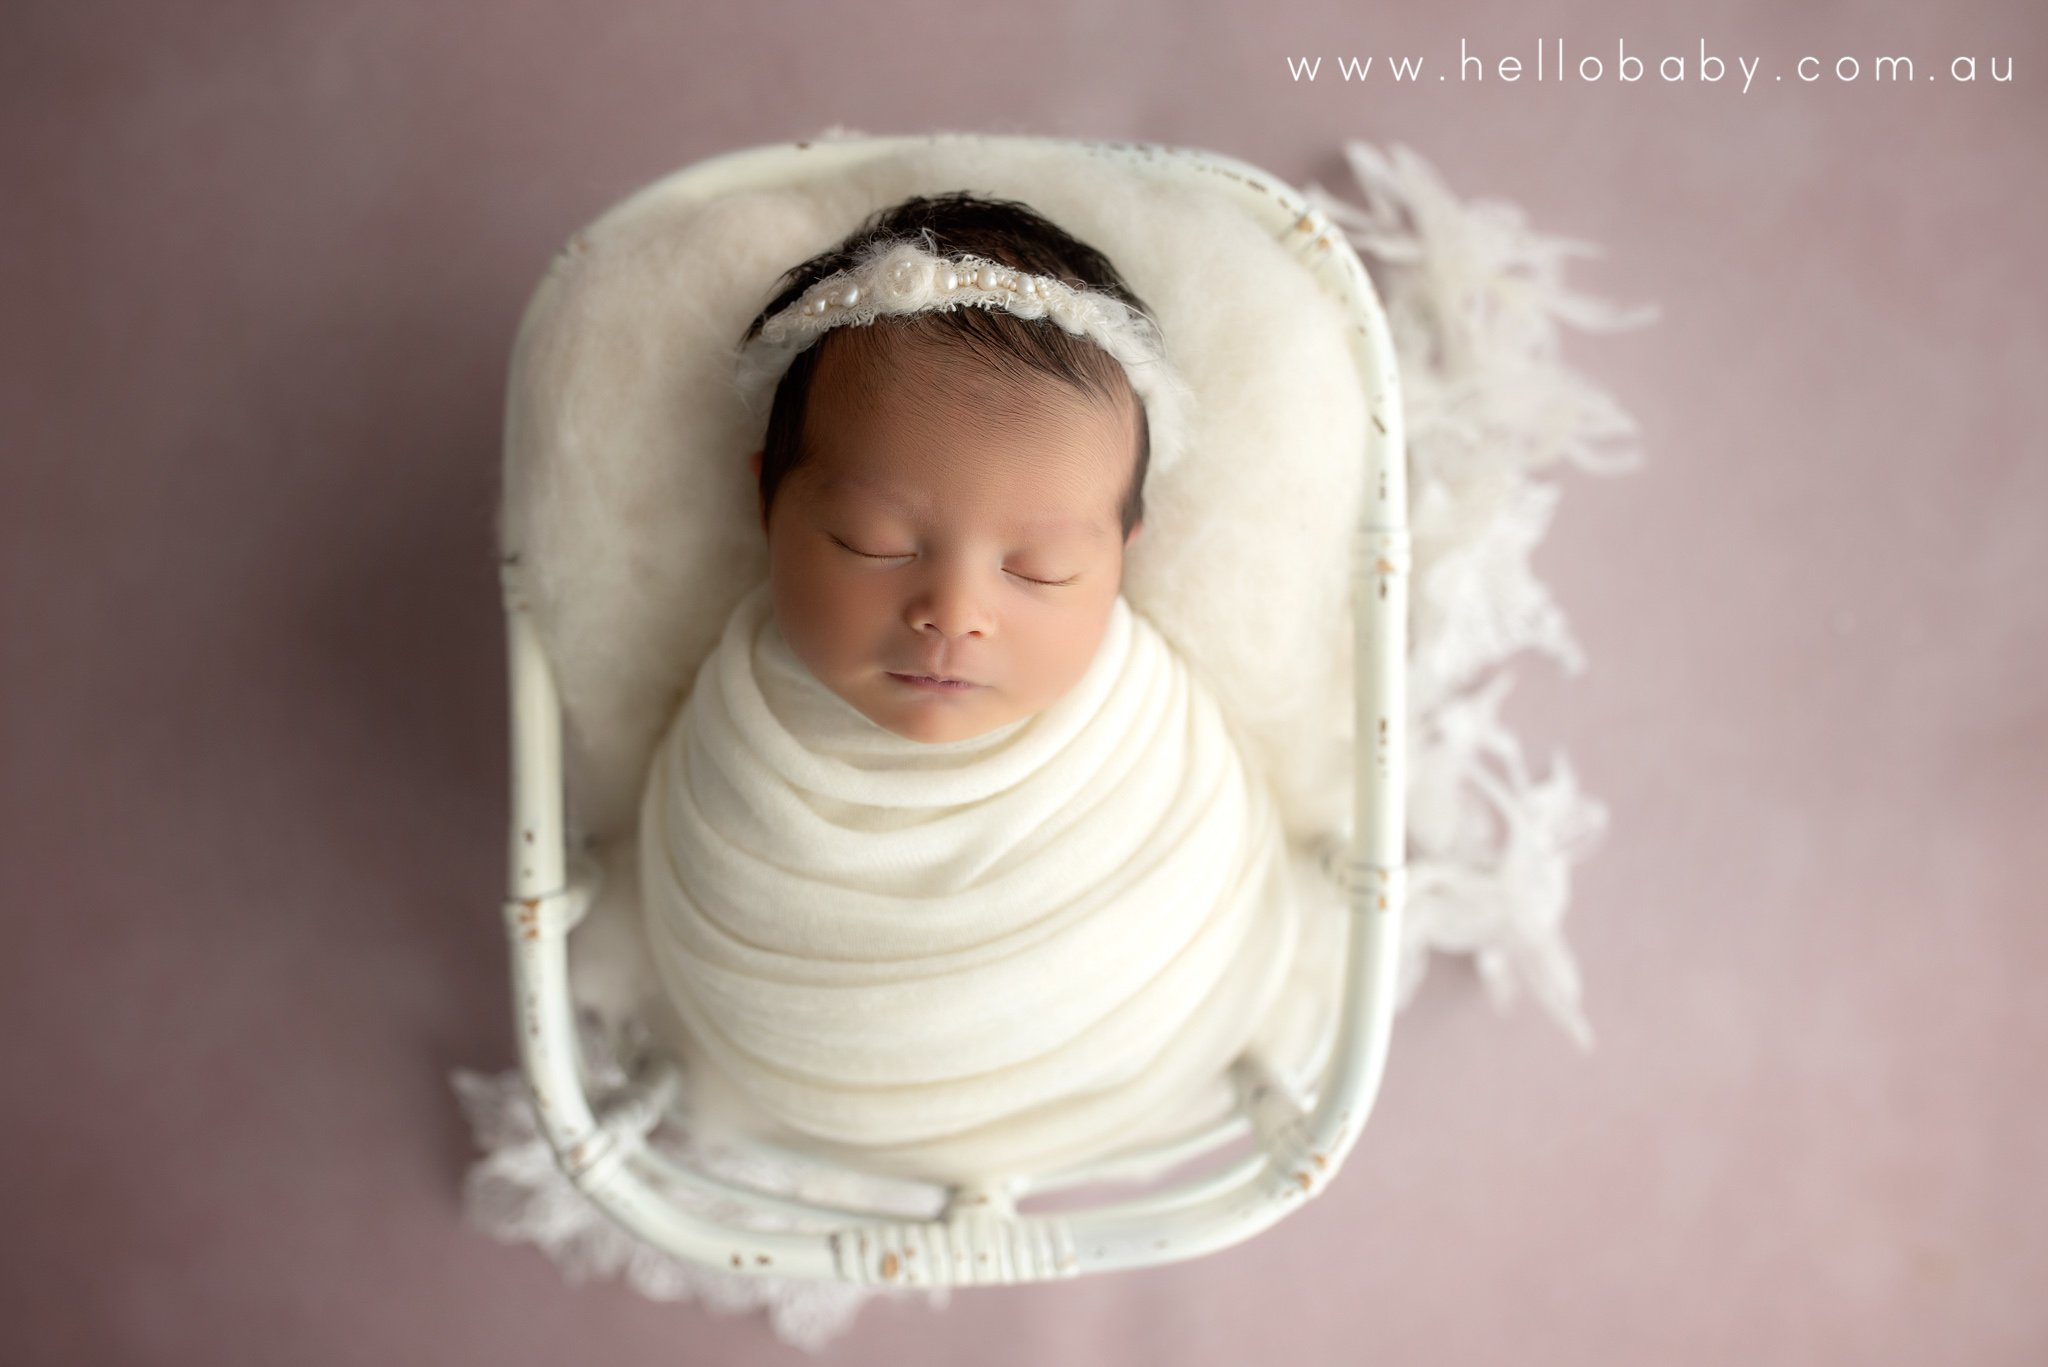 Baby girl wrapped in a white wrap placed in a white basket surrounded by white flowers on a pink floor